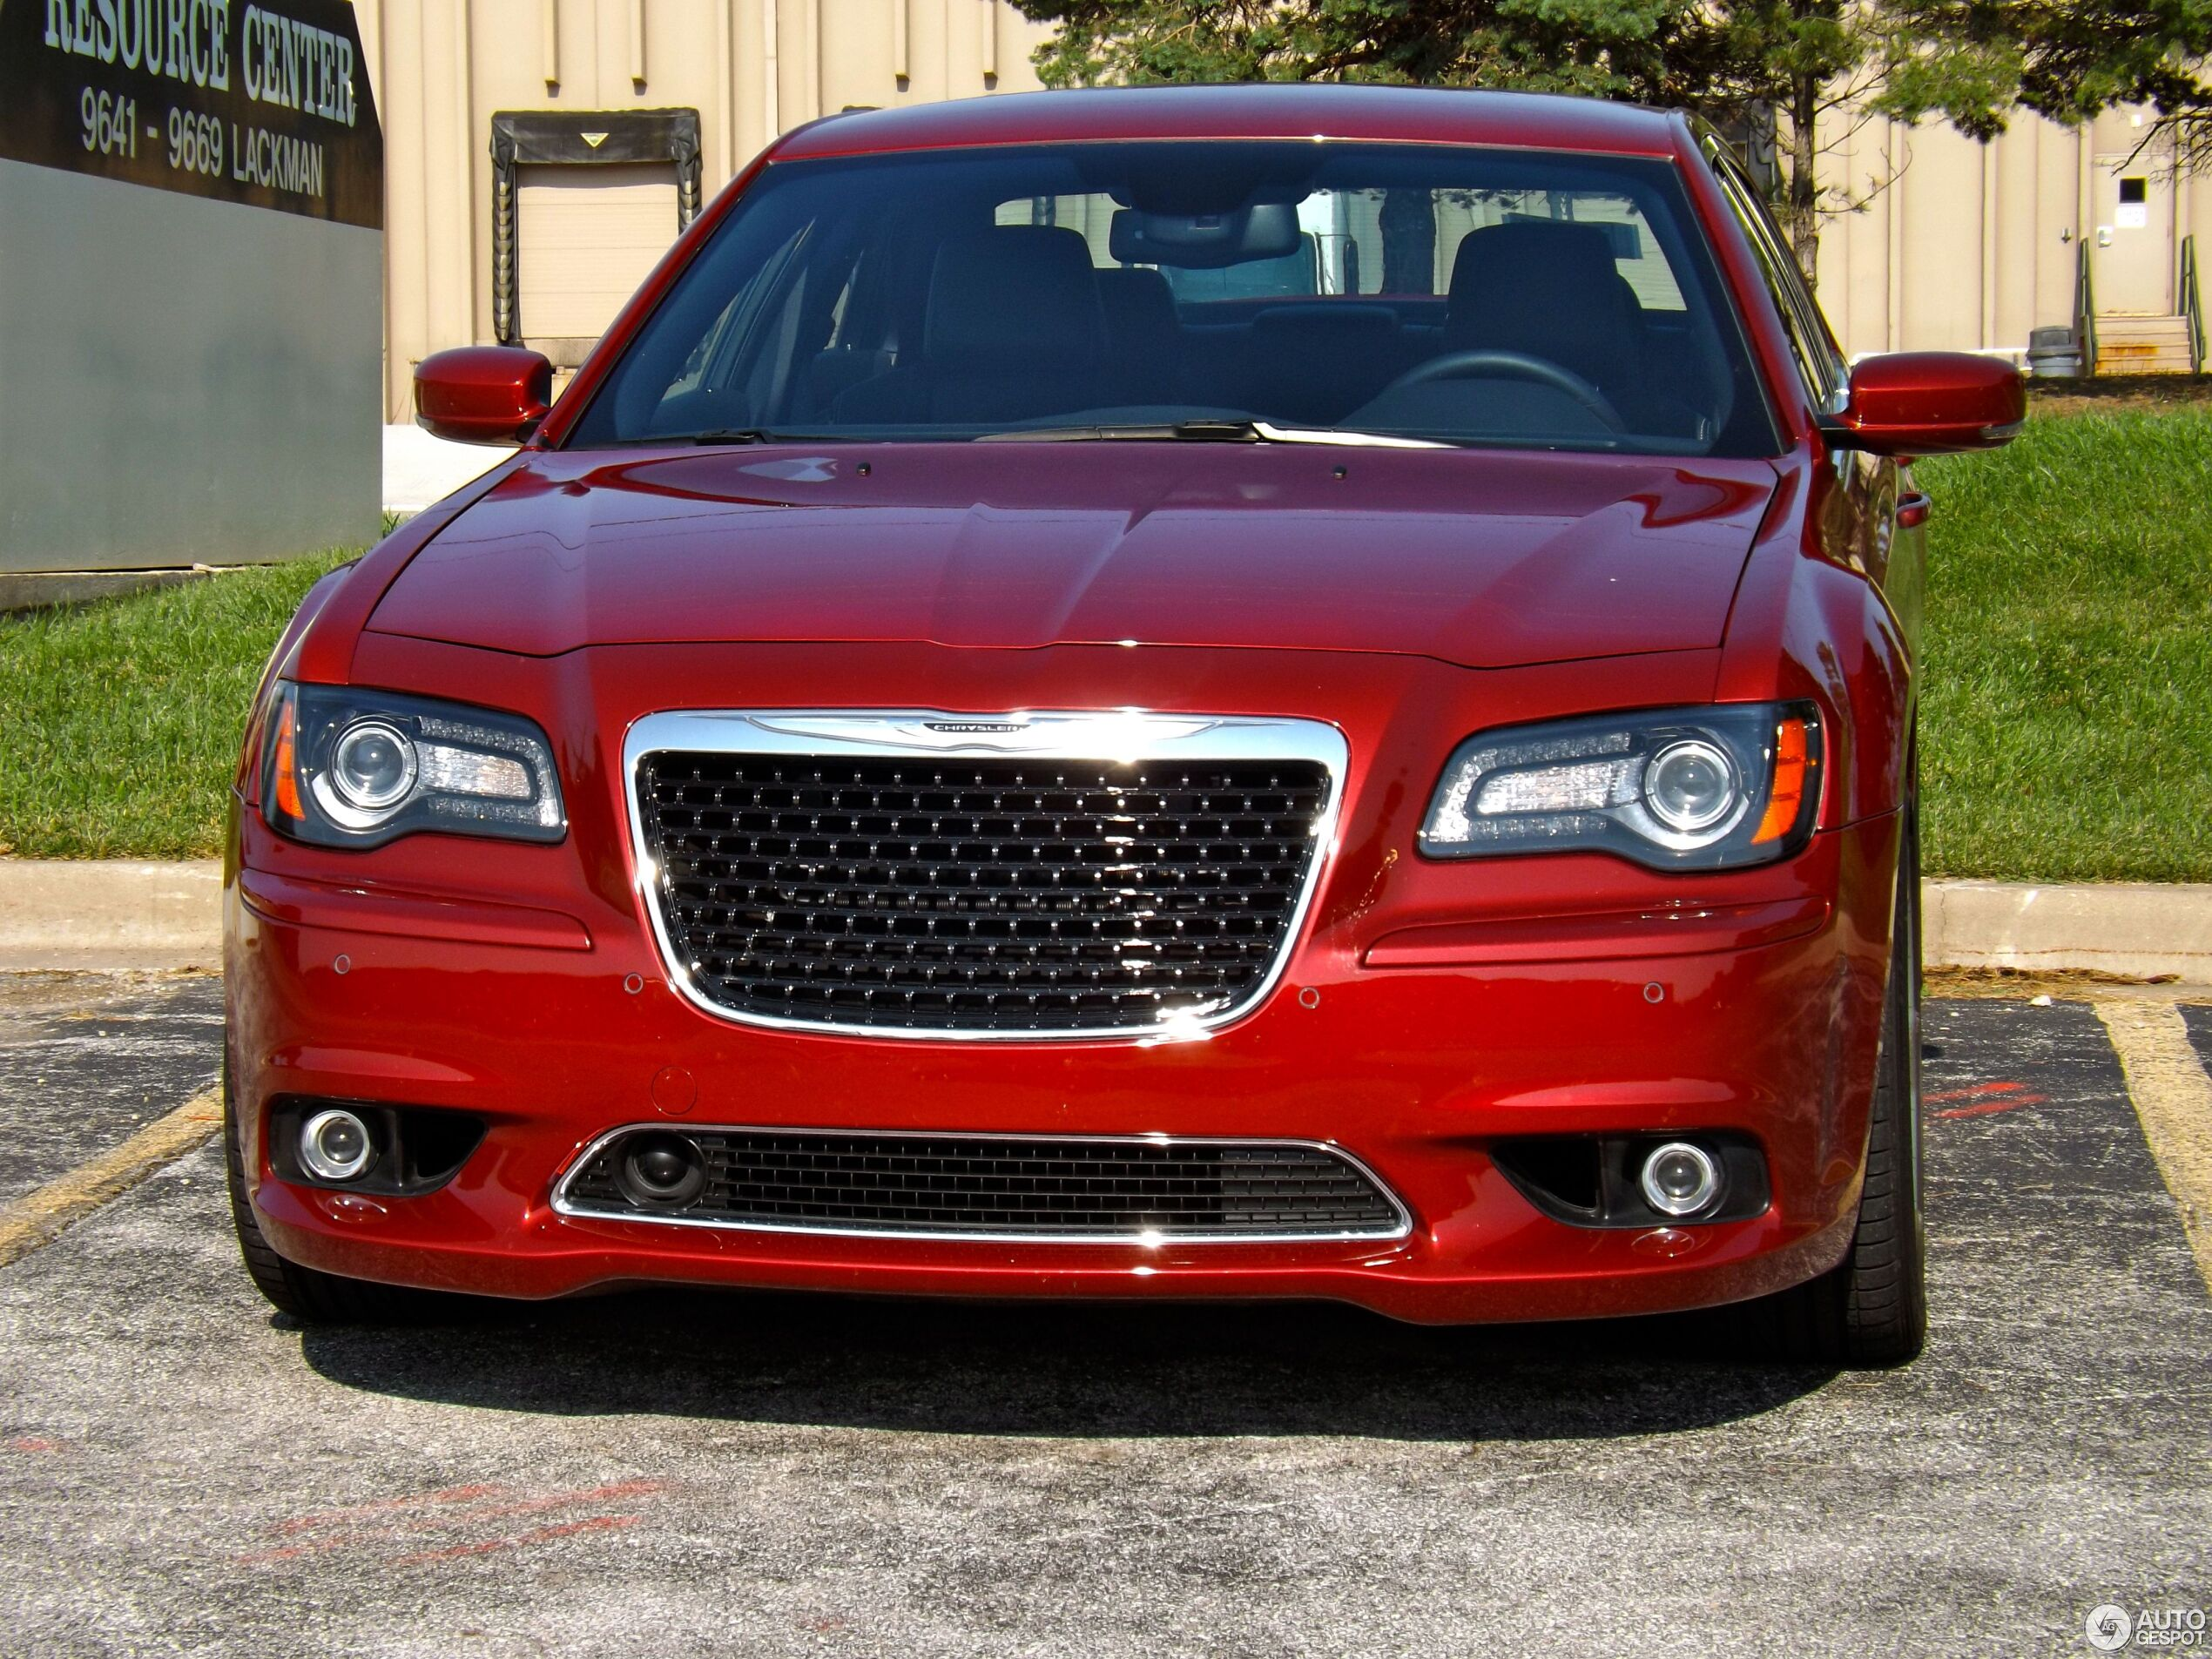 chrysler 300c srt8 2013 4 july 2013 autogespot. Black Bedroom Furniture Sets. Home Design Ideas